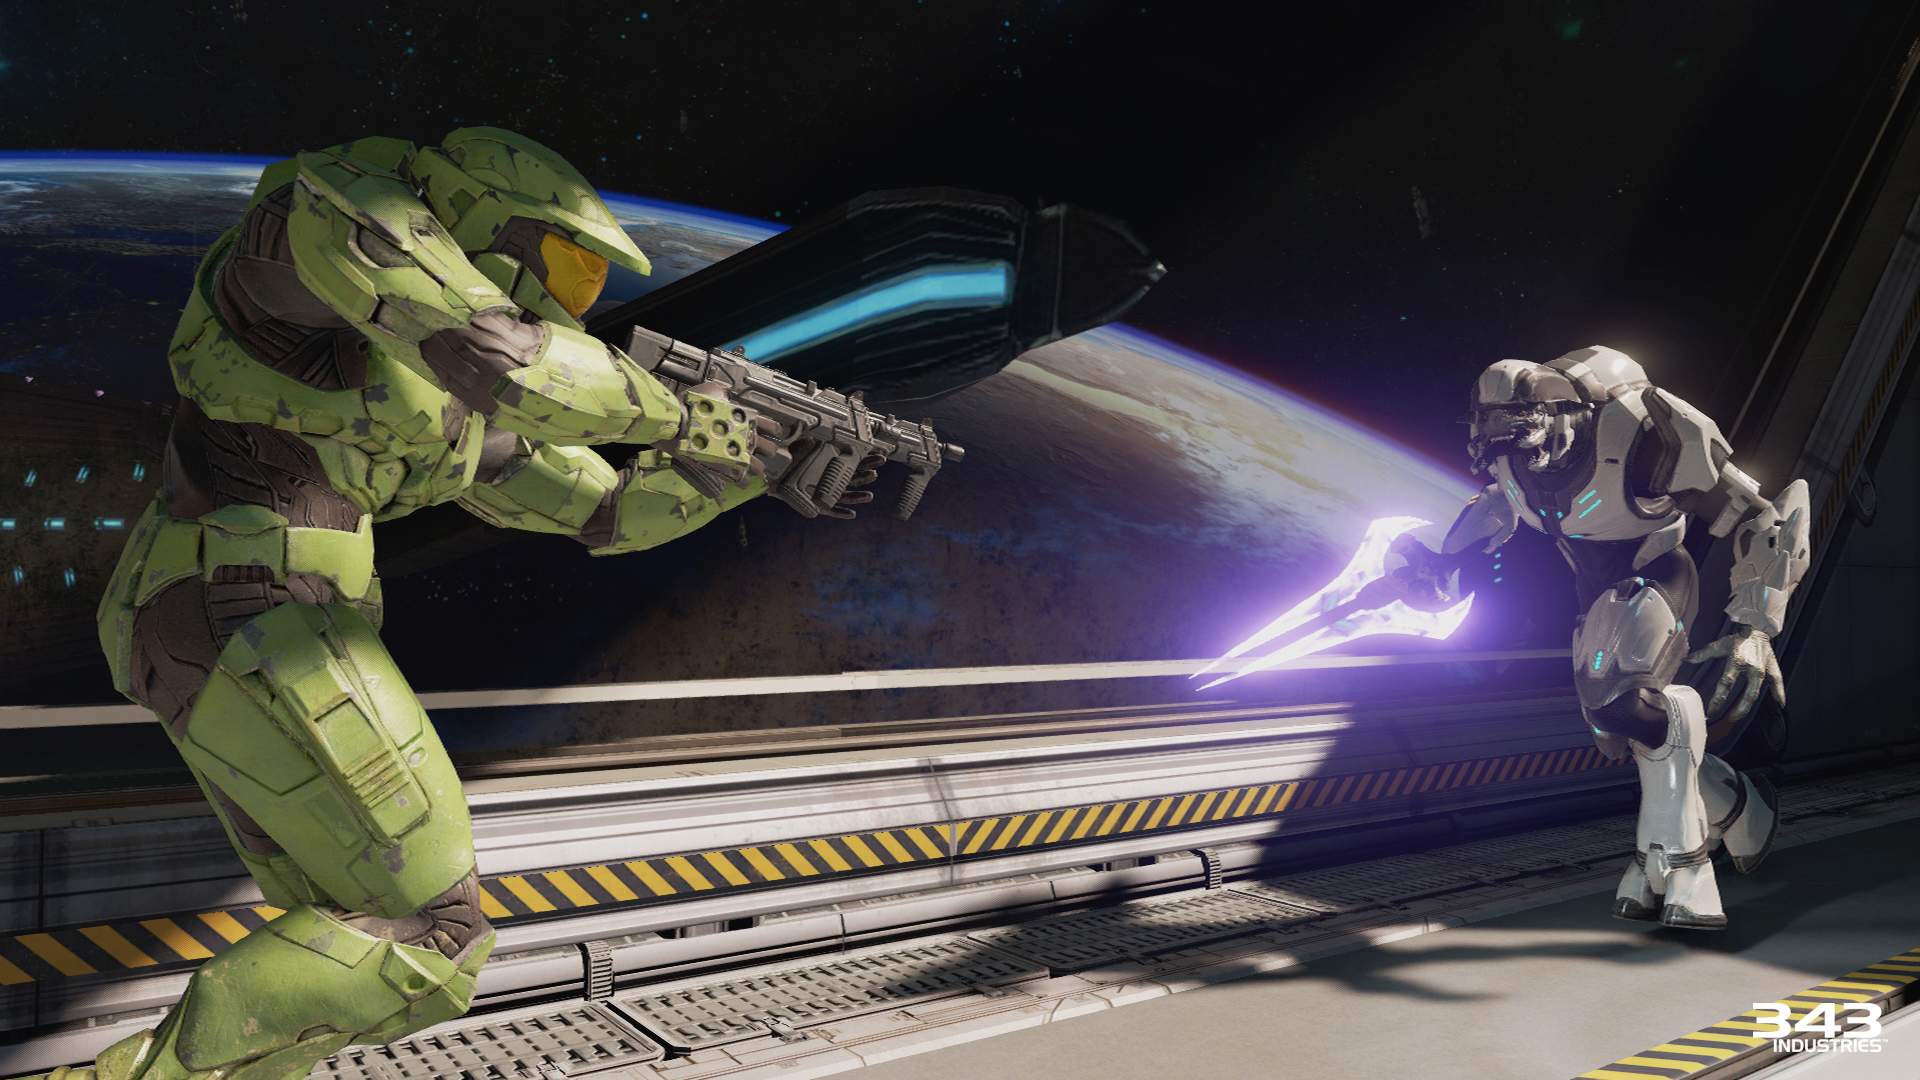 Halo: The Master Chief Collection HD wallpapers, Desktop wallpaper - most viewed